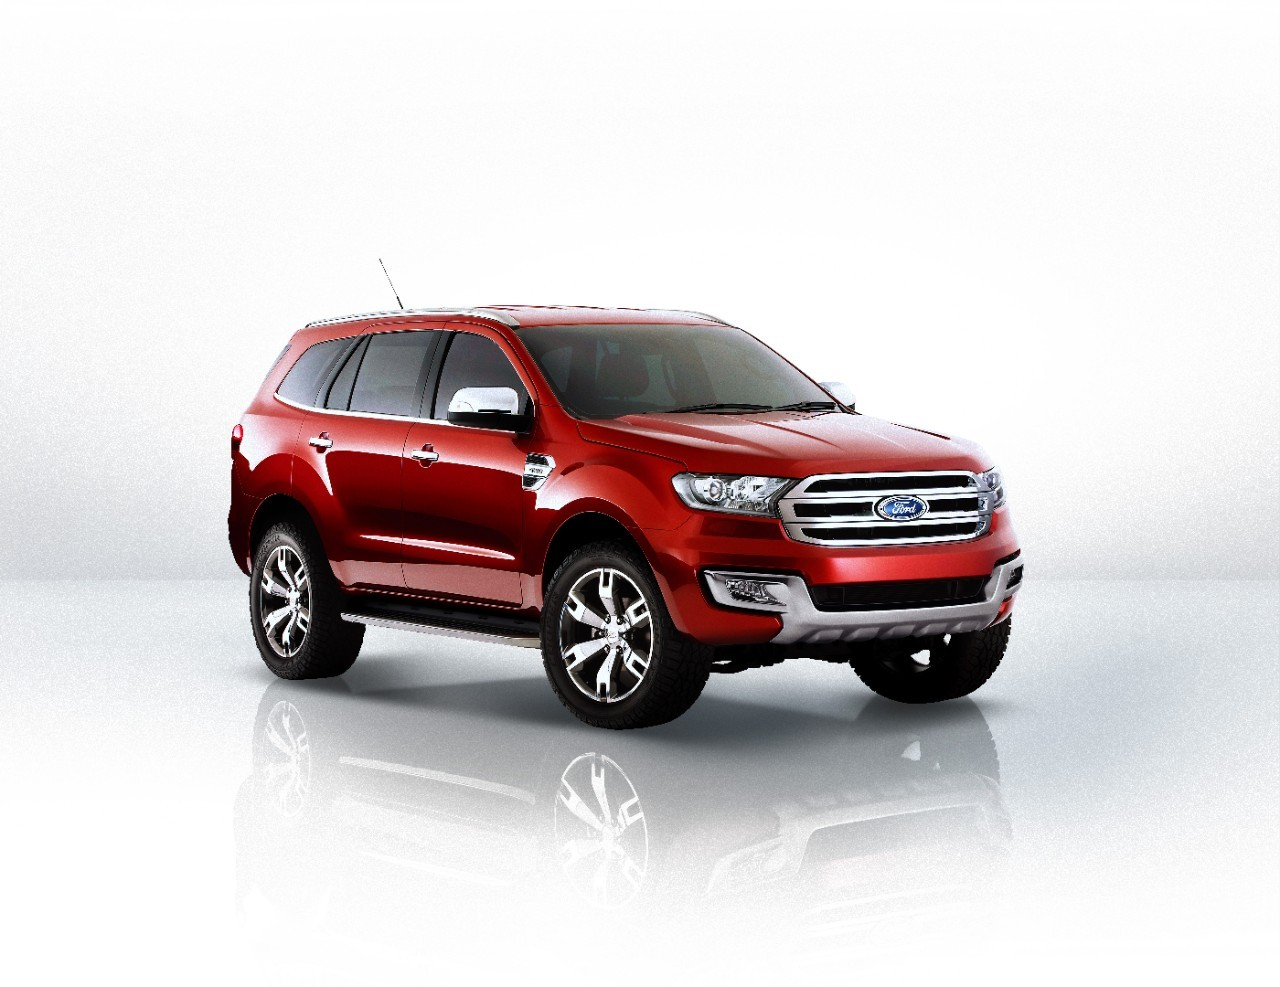 New Ford Everest aka Endeavour unveiled- Beijing Auto Show